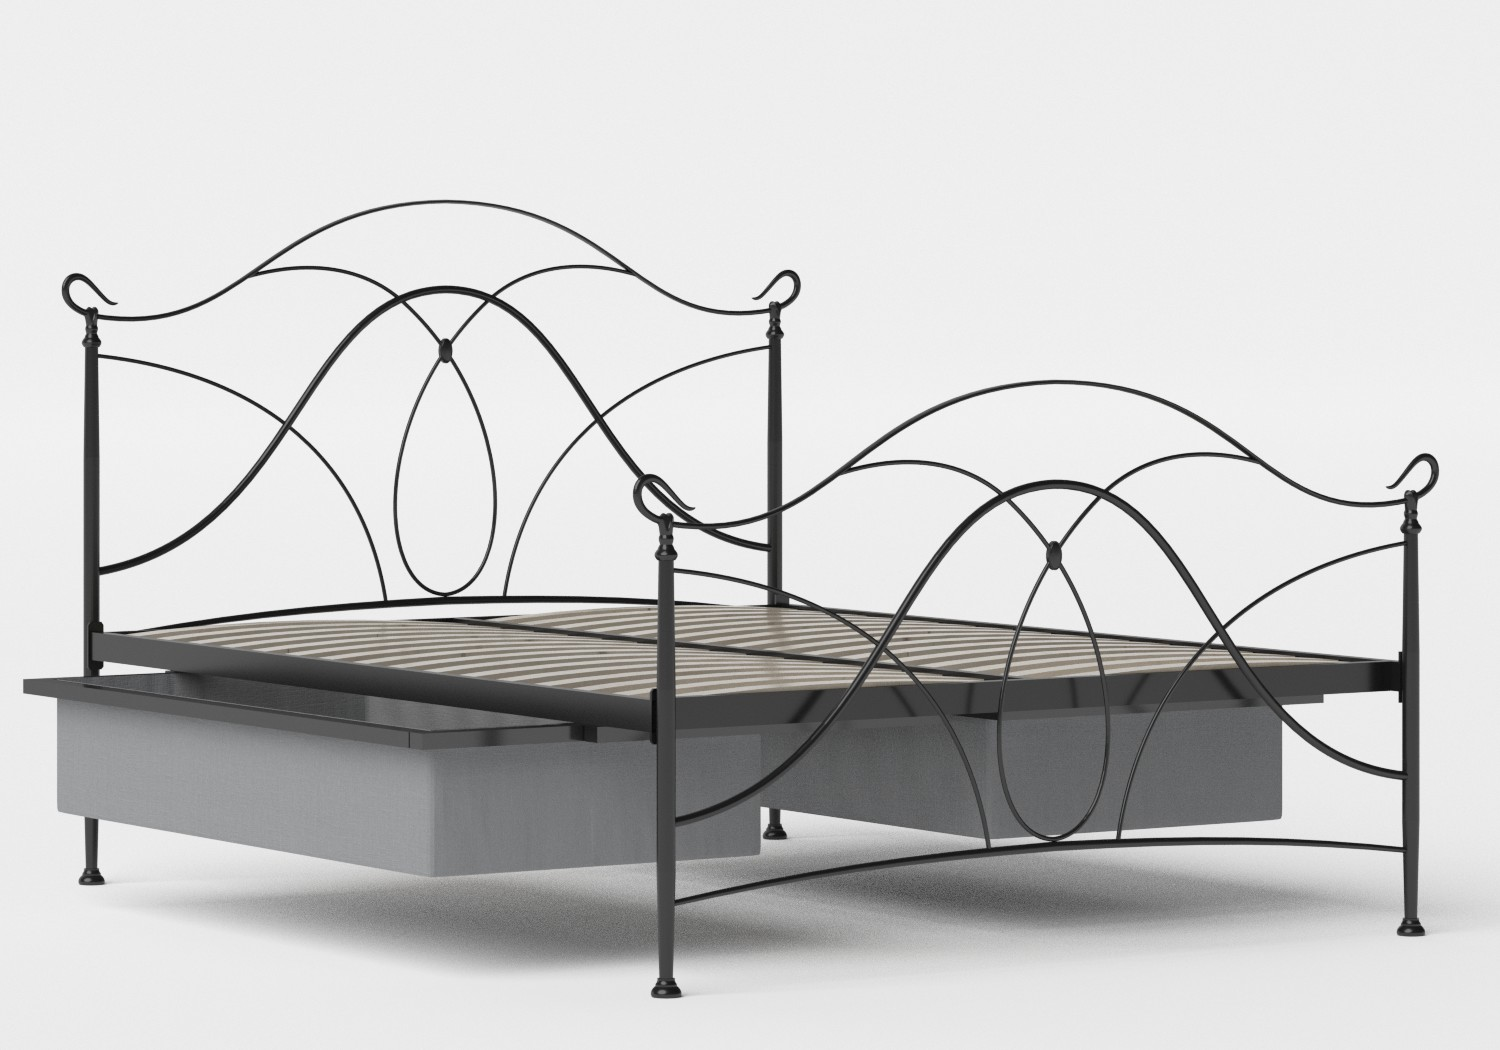 Ardo Iron/Metal Bed in Satin Black shown with underbed storage